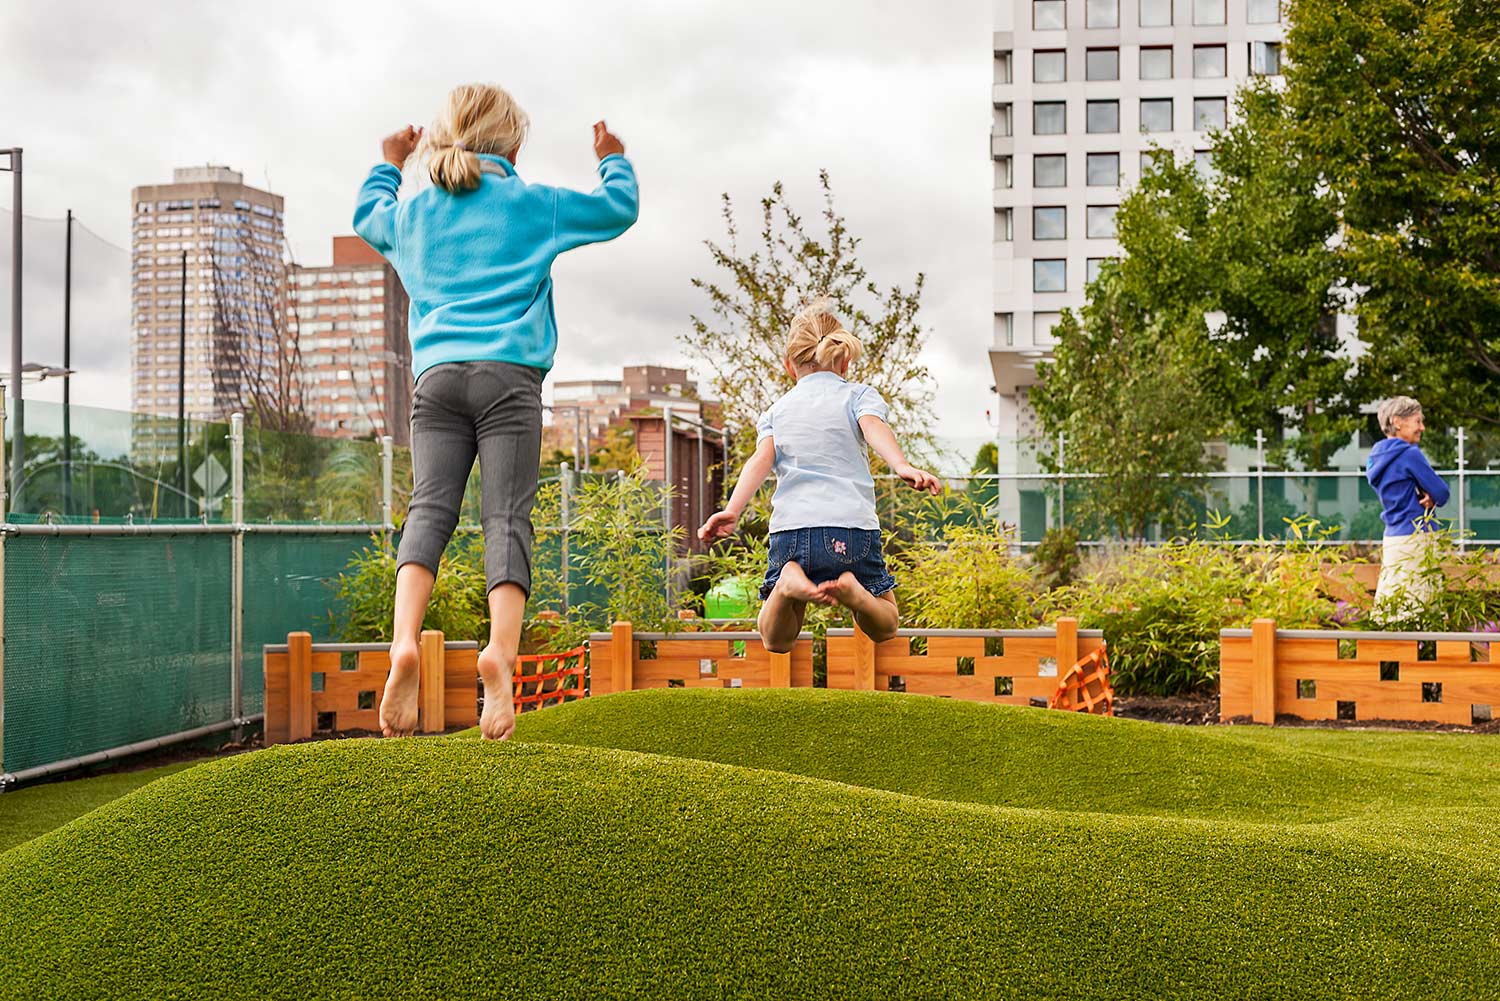 MIT-Childcare-Center_children-playing-turf-landform-Klopfer-Martin.jpg